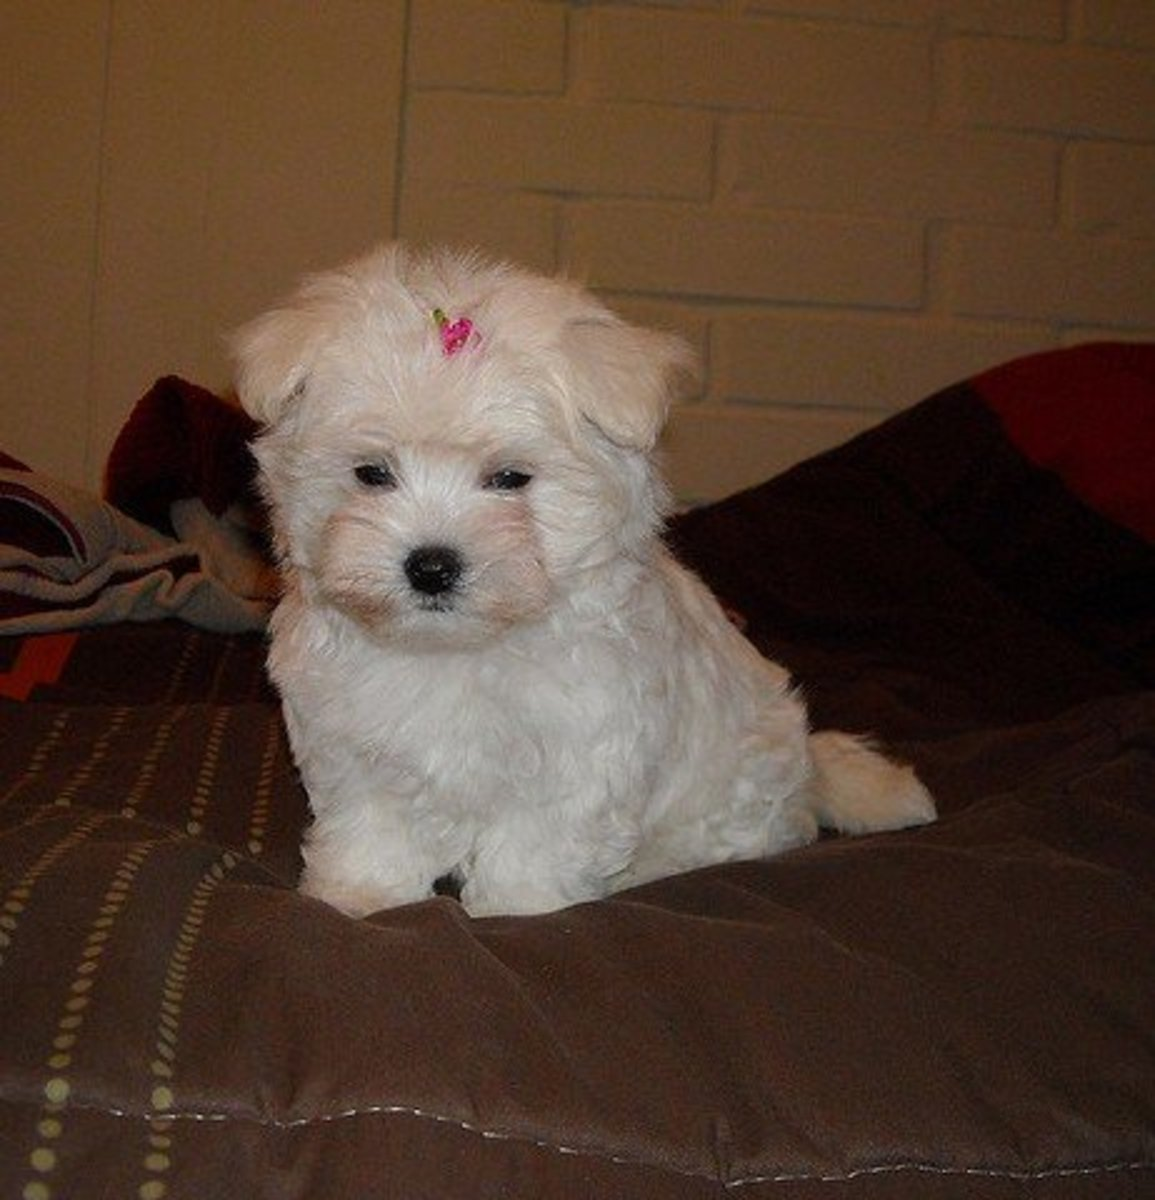 A tiny, fluffy, Maltese puppy.